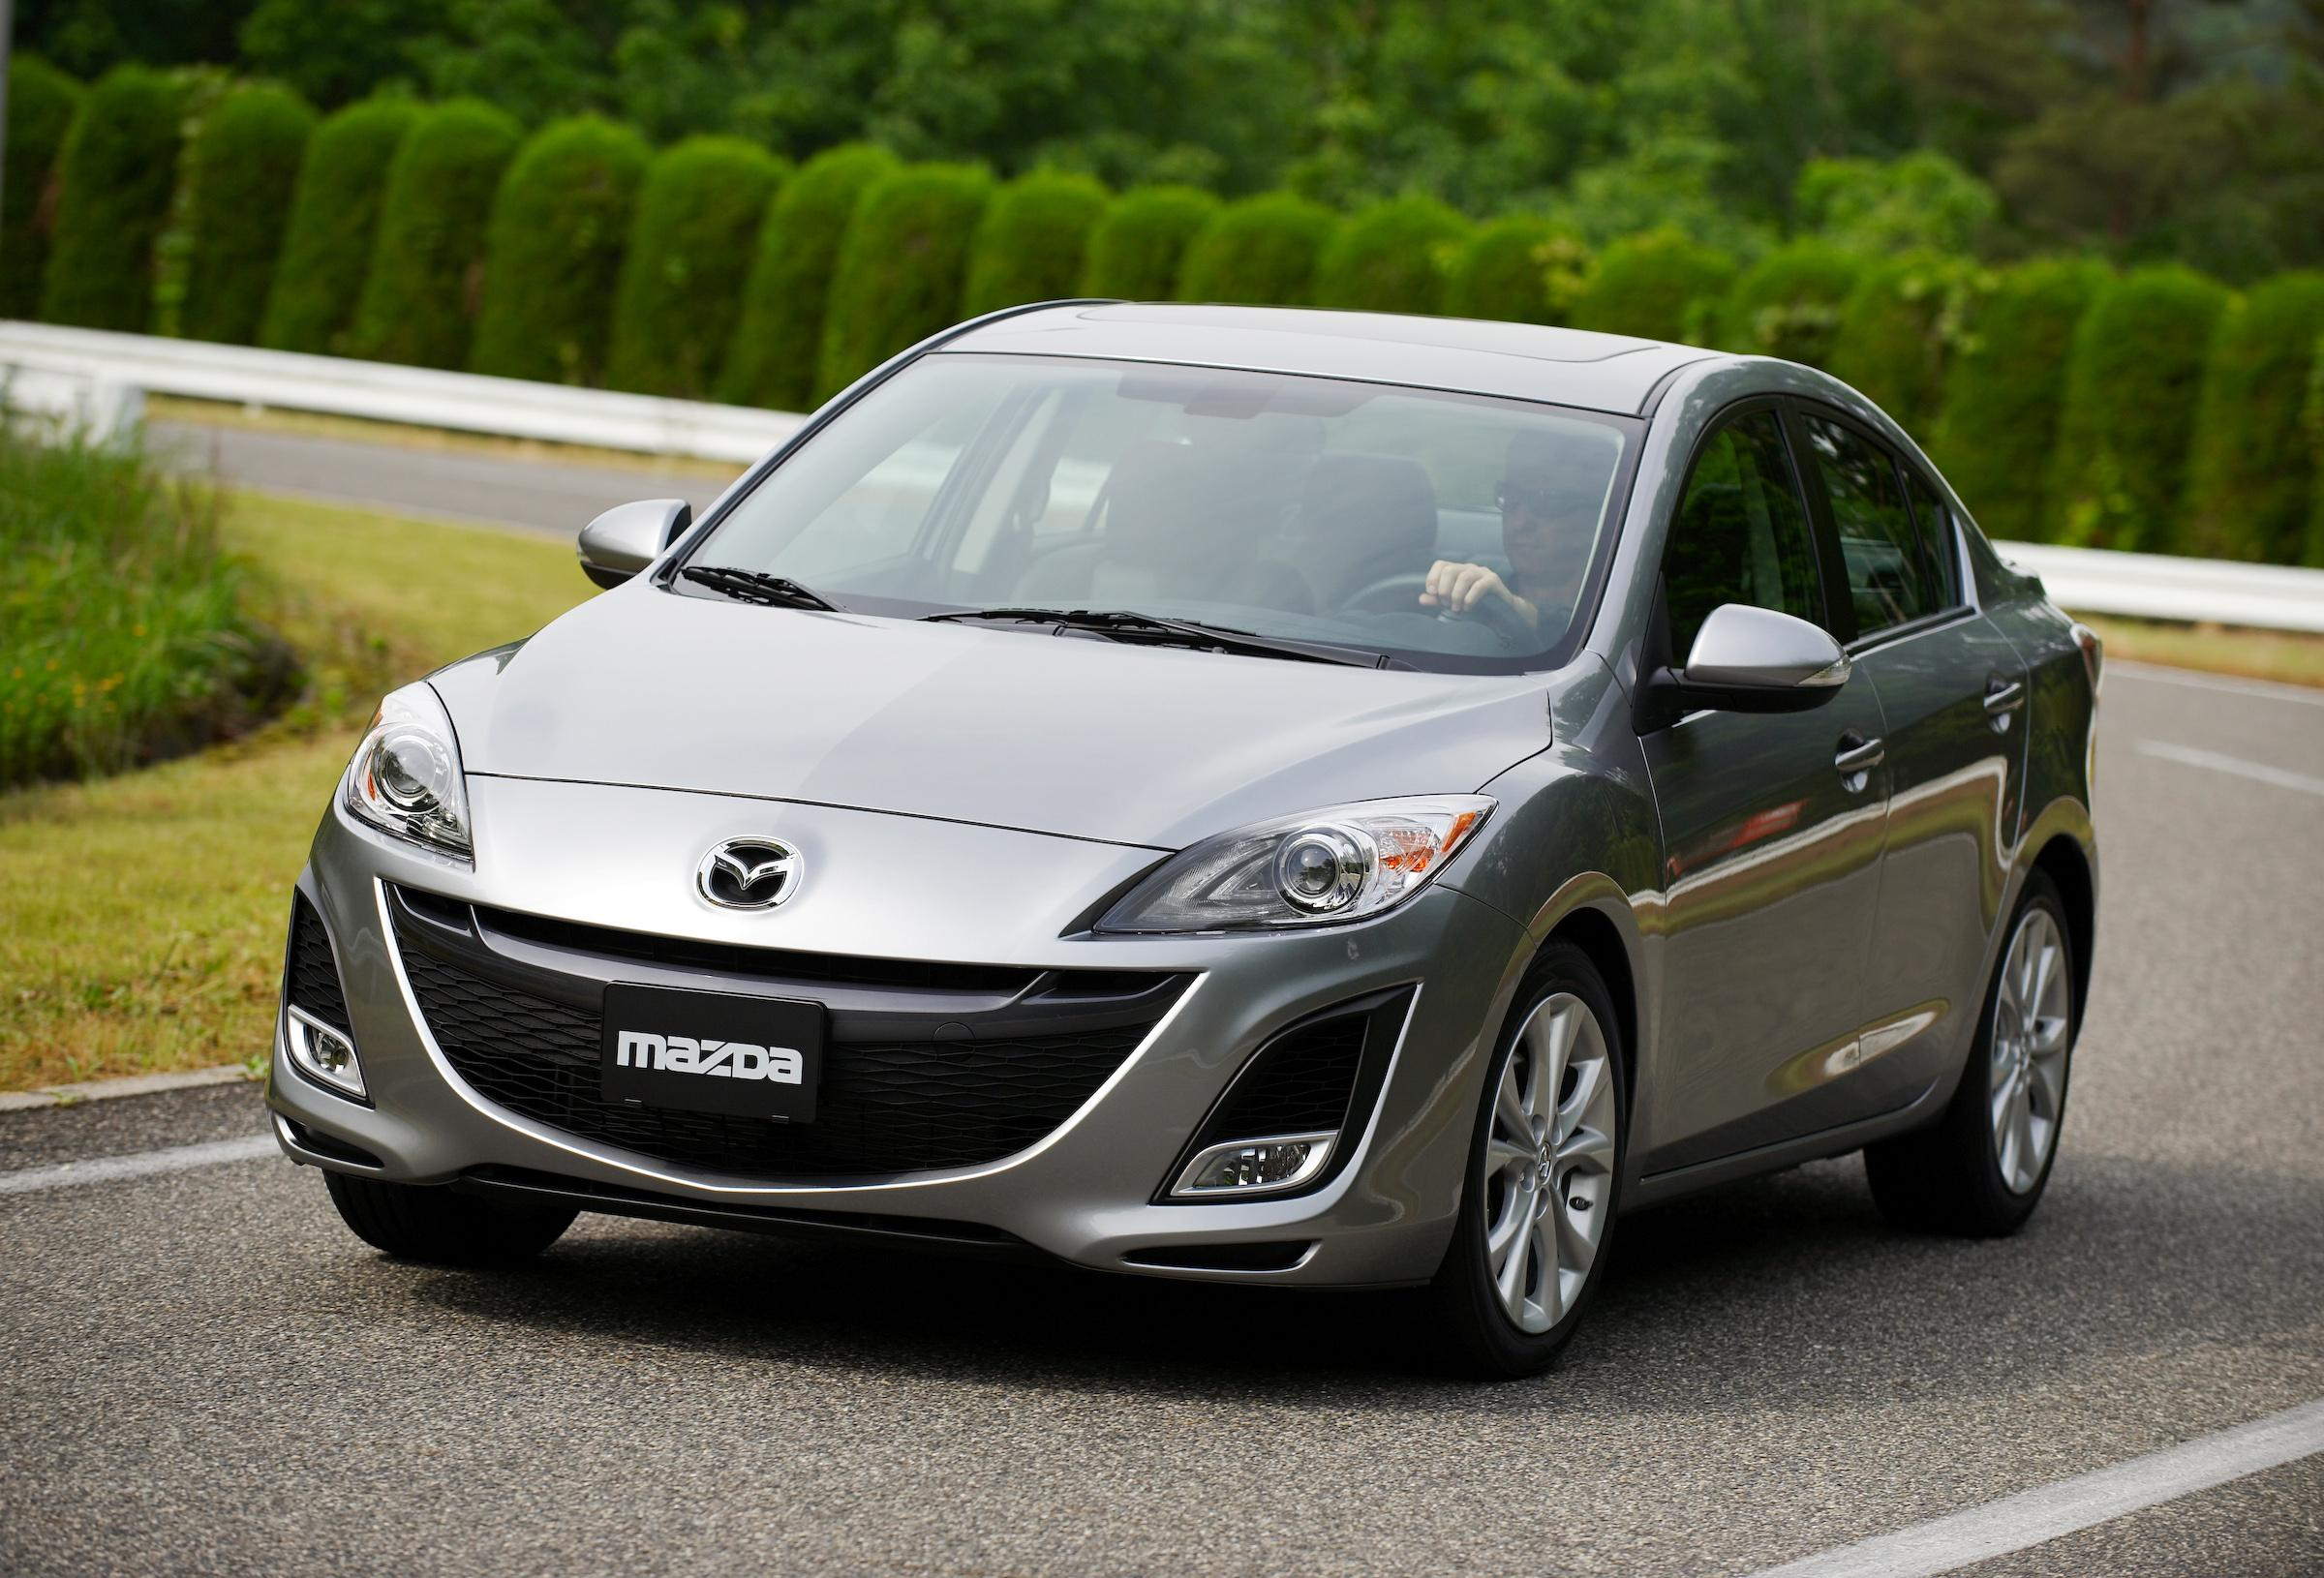 tool a driving sedan go it with well kodo really to double instrument design vehicle third review both in works is mazda and line language receive not the hatchback out but s an up flat models